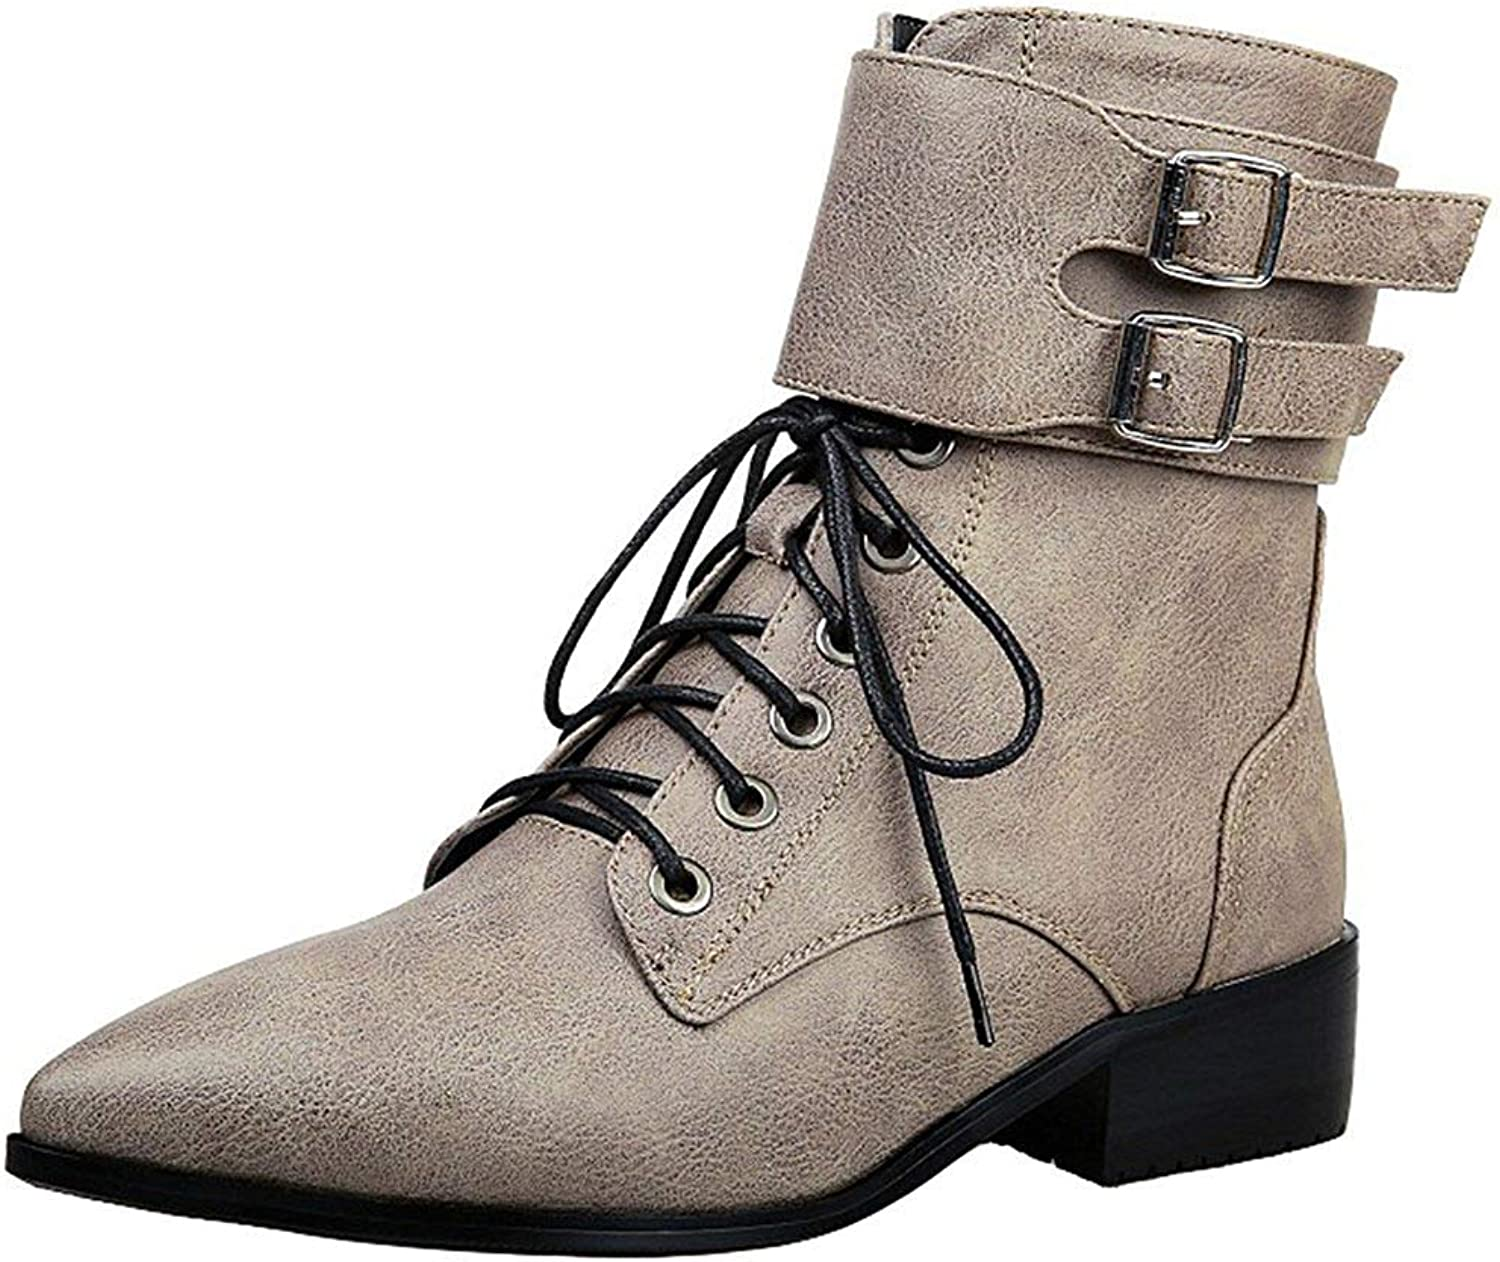 Ghssheh Women's Stylish Buckle Belt Block Low Heel Lace Up Ankle Booties Pointed Toe Side Zipper Short Boots Coffee 5 M US